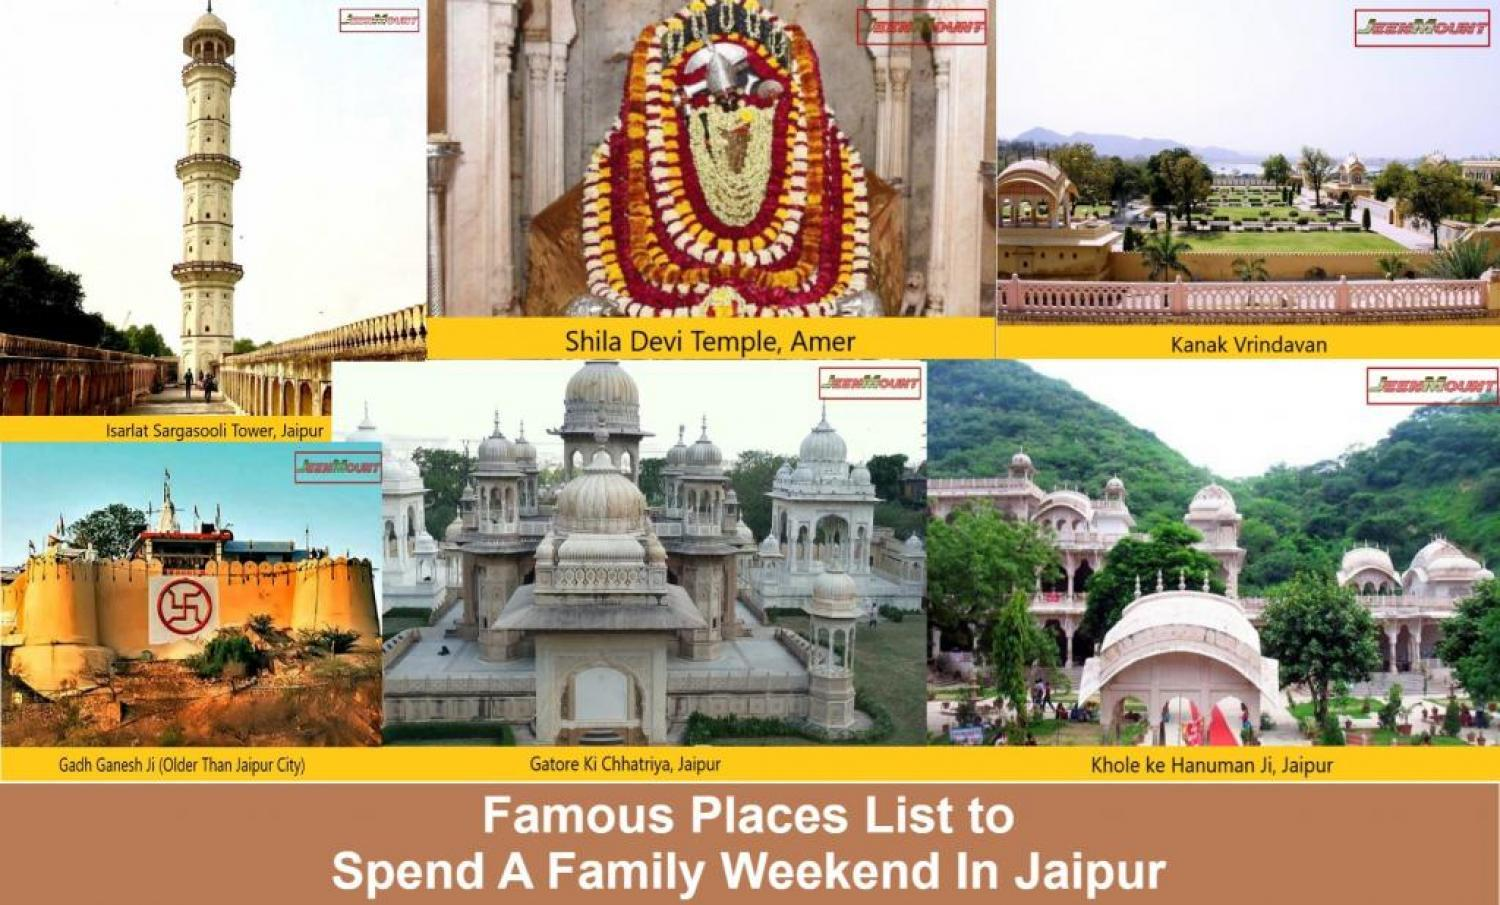 How To Spend A Family Weekend In Jaipur, Rajasthan